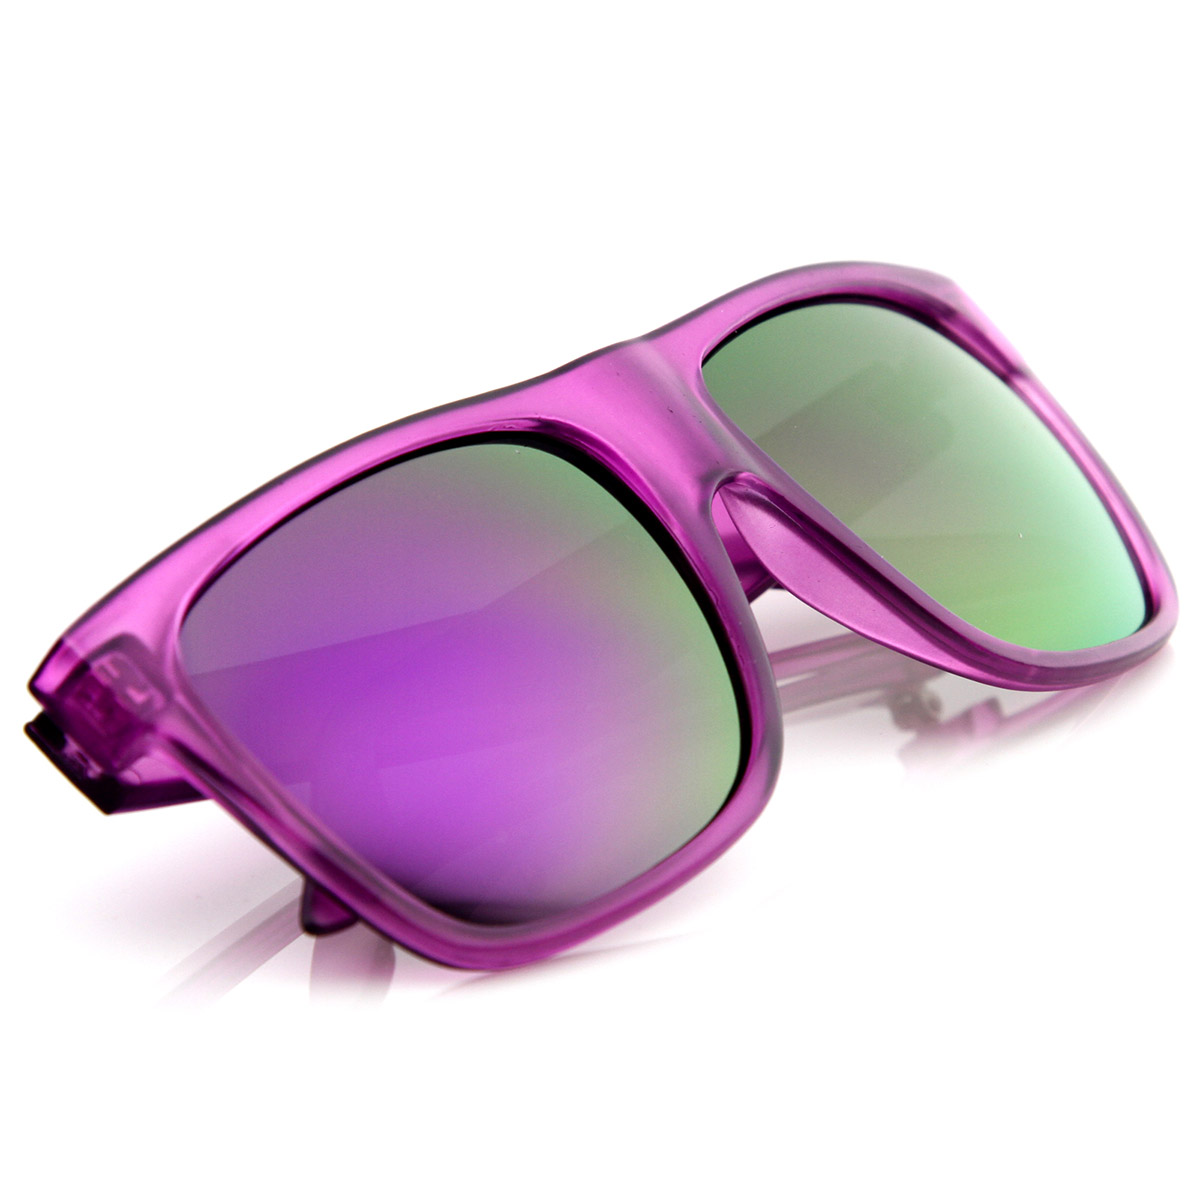 Retro-Fashion-Frosted-Color-Horn-Rimmed-Style-Sunglasses-w-Color-Mirror-Lens